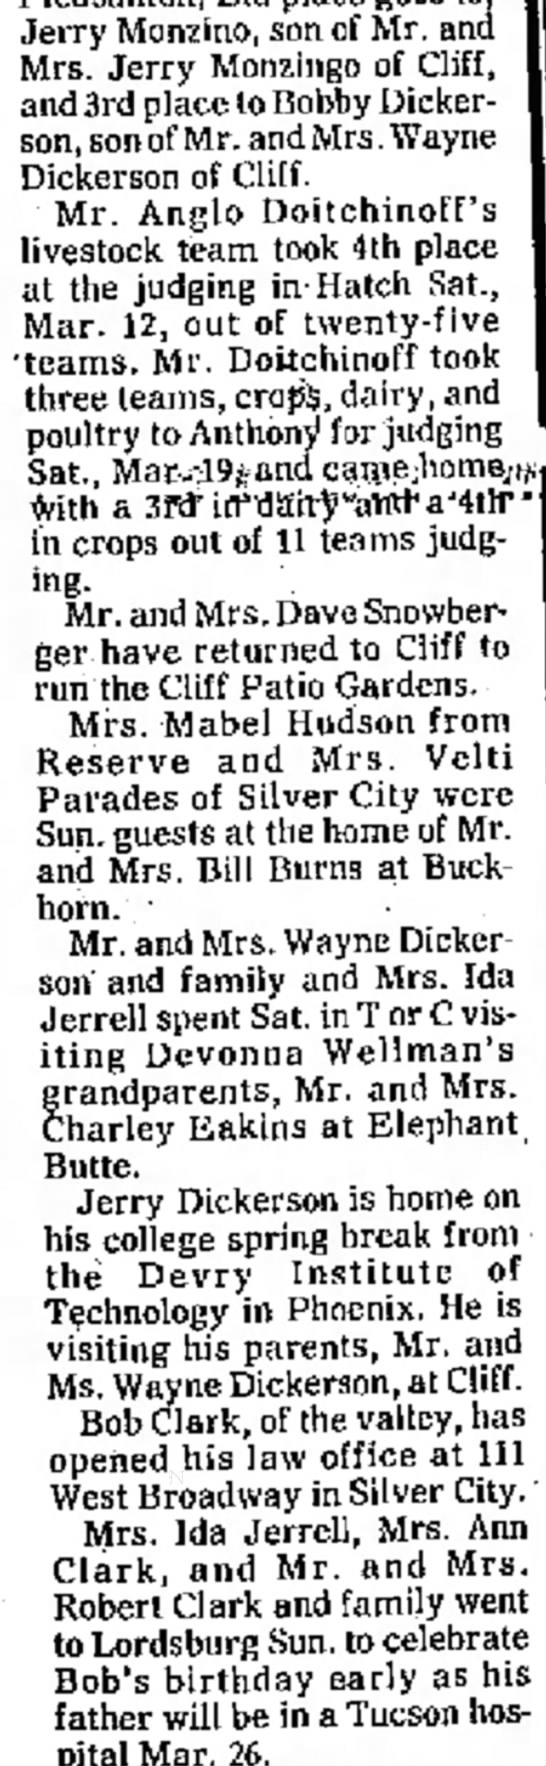 Dickerson mention in article, March 1977 -